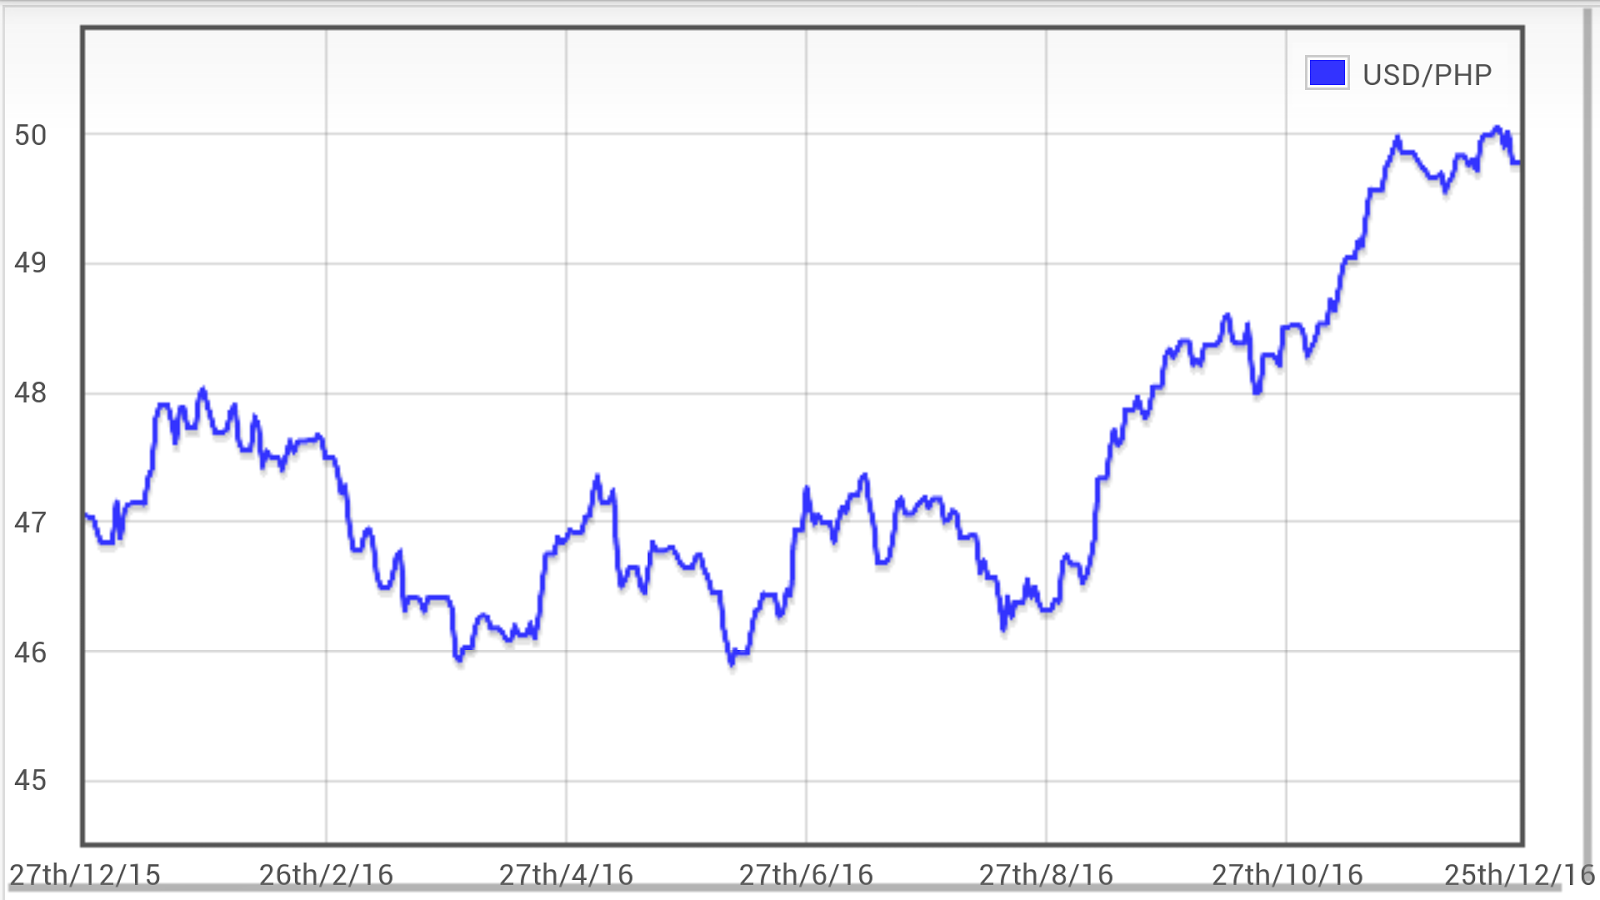 Nrb forex rate